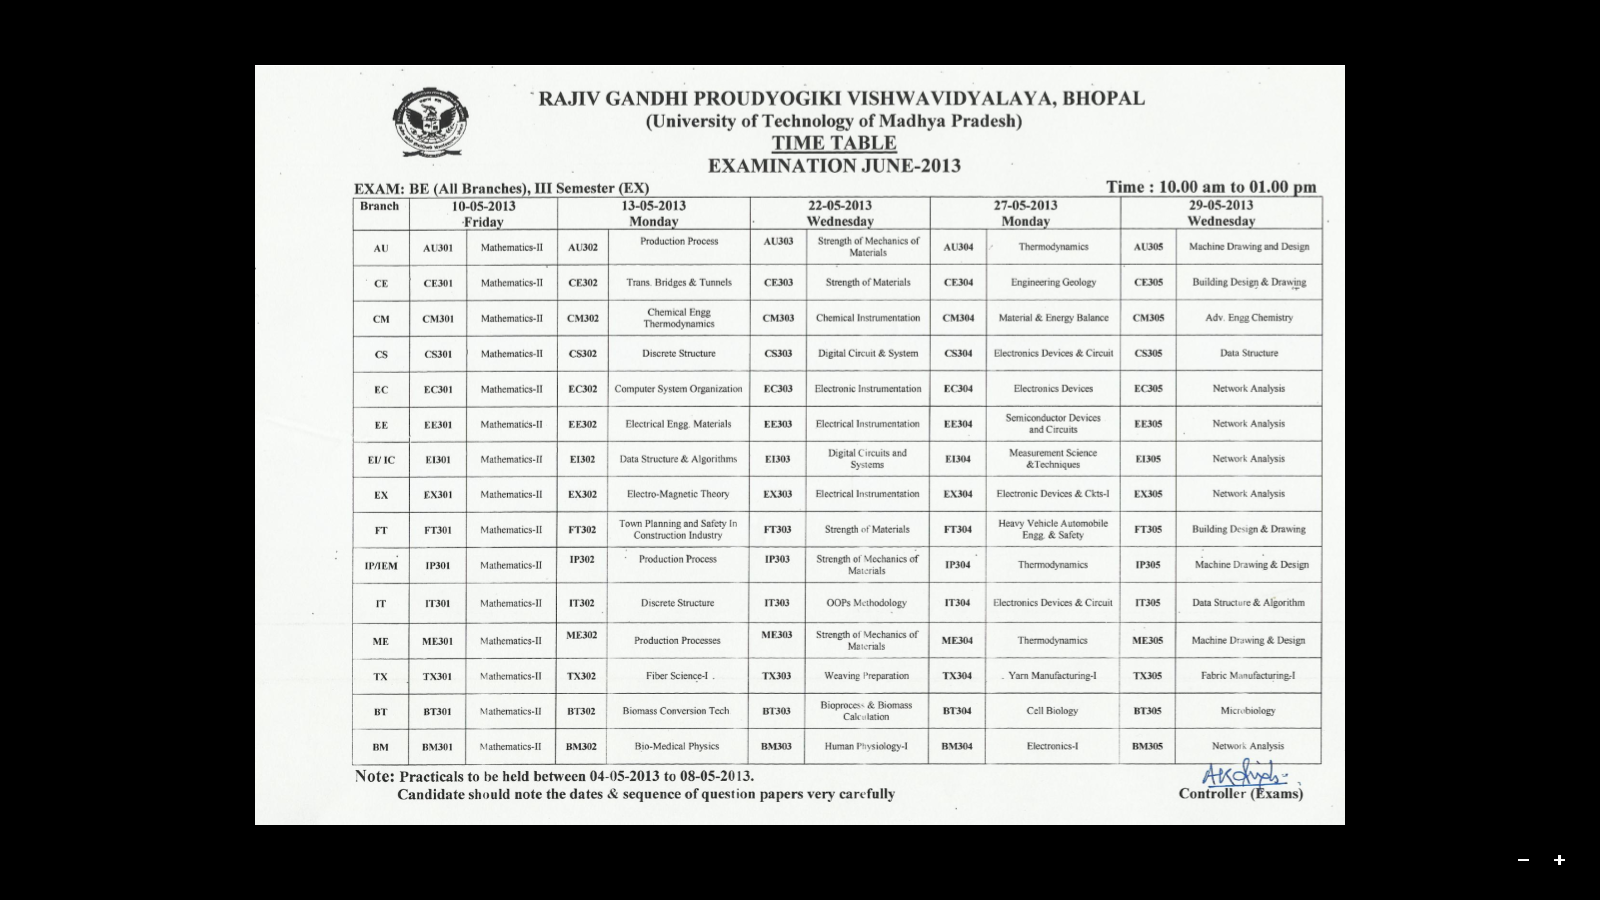 Pin rgpv be time table 1st 2nd 3rd 4th 5th 6th 7th and 8th for 6th sem time table